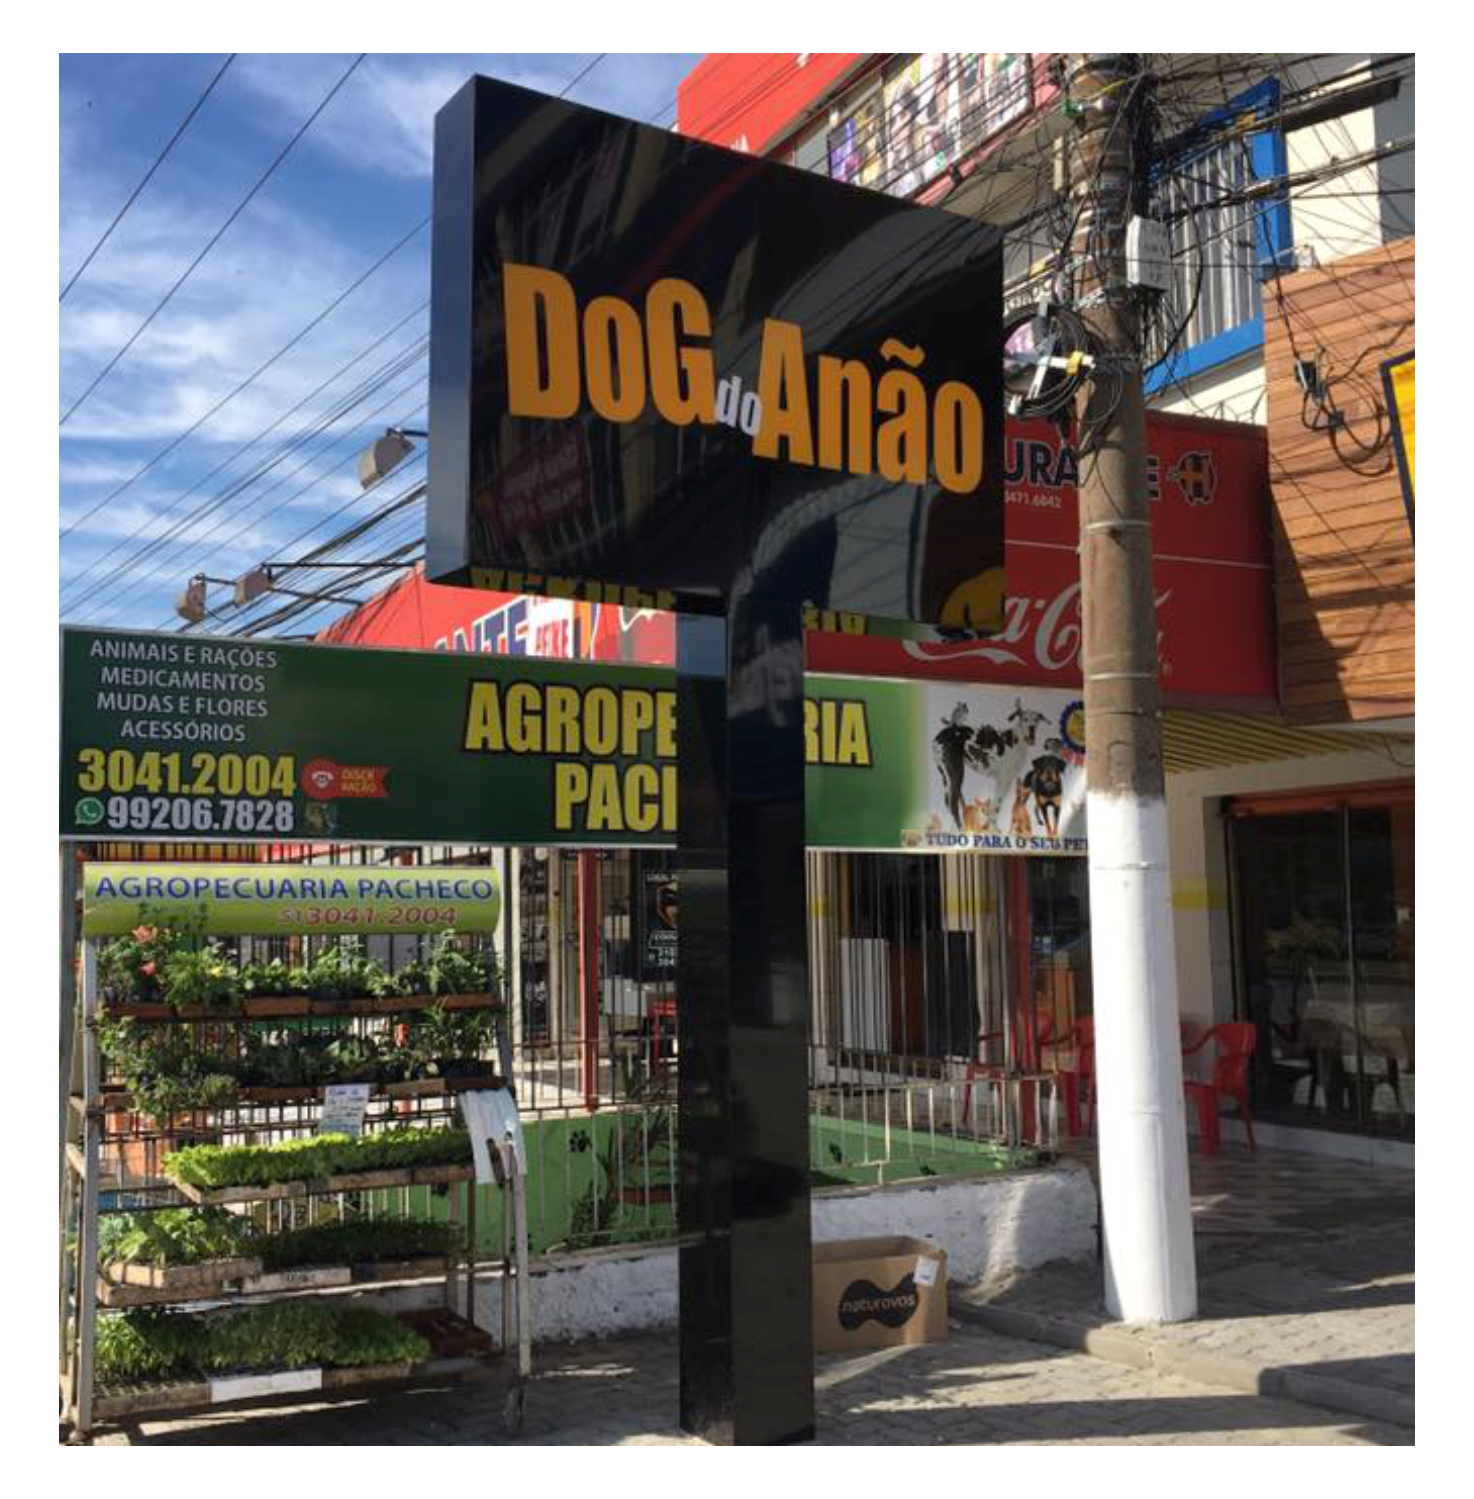 Dog do Anao